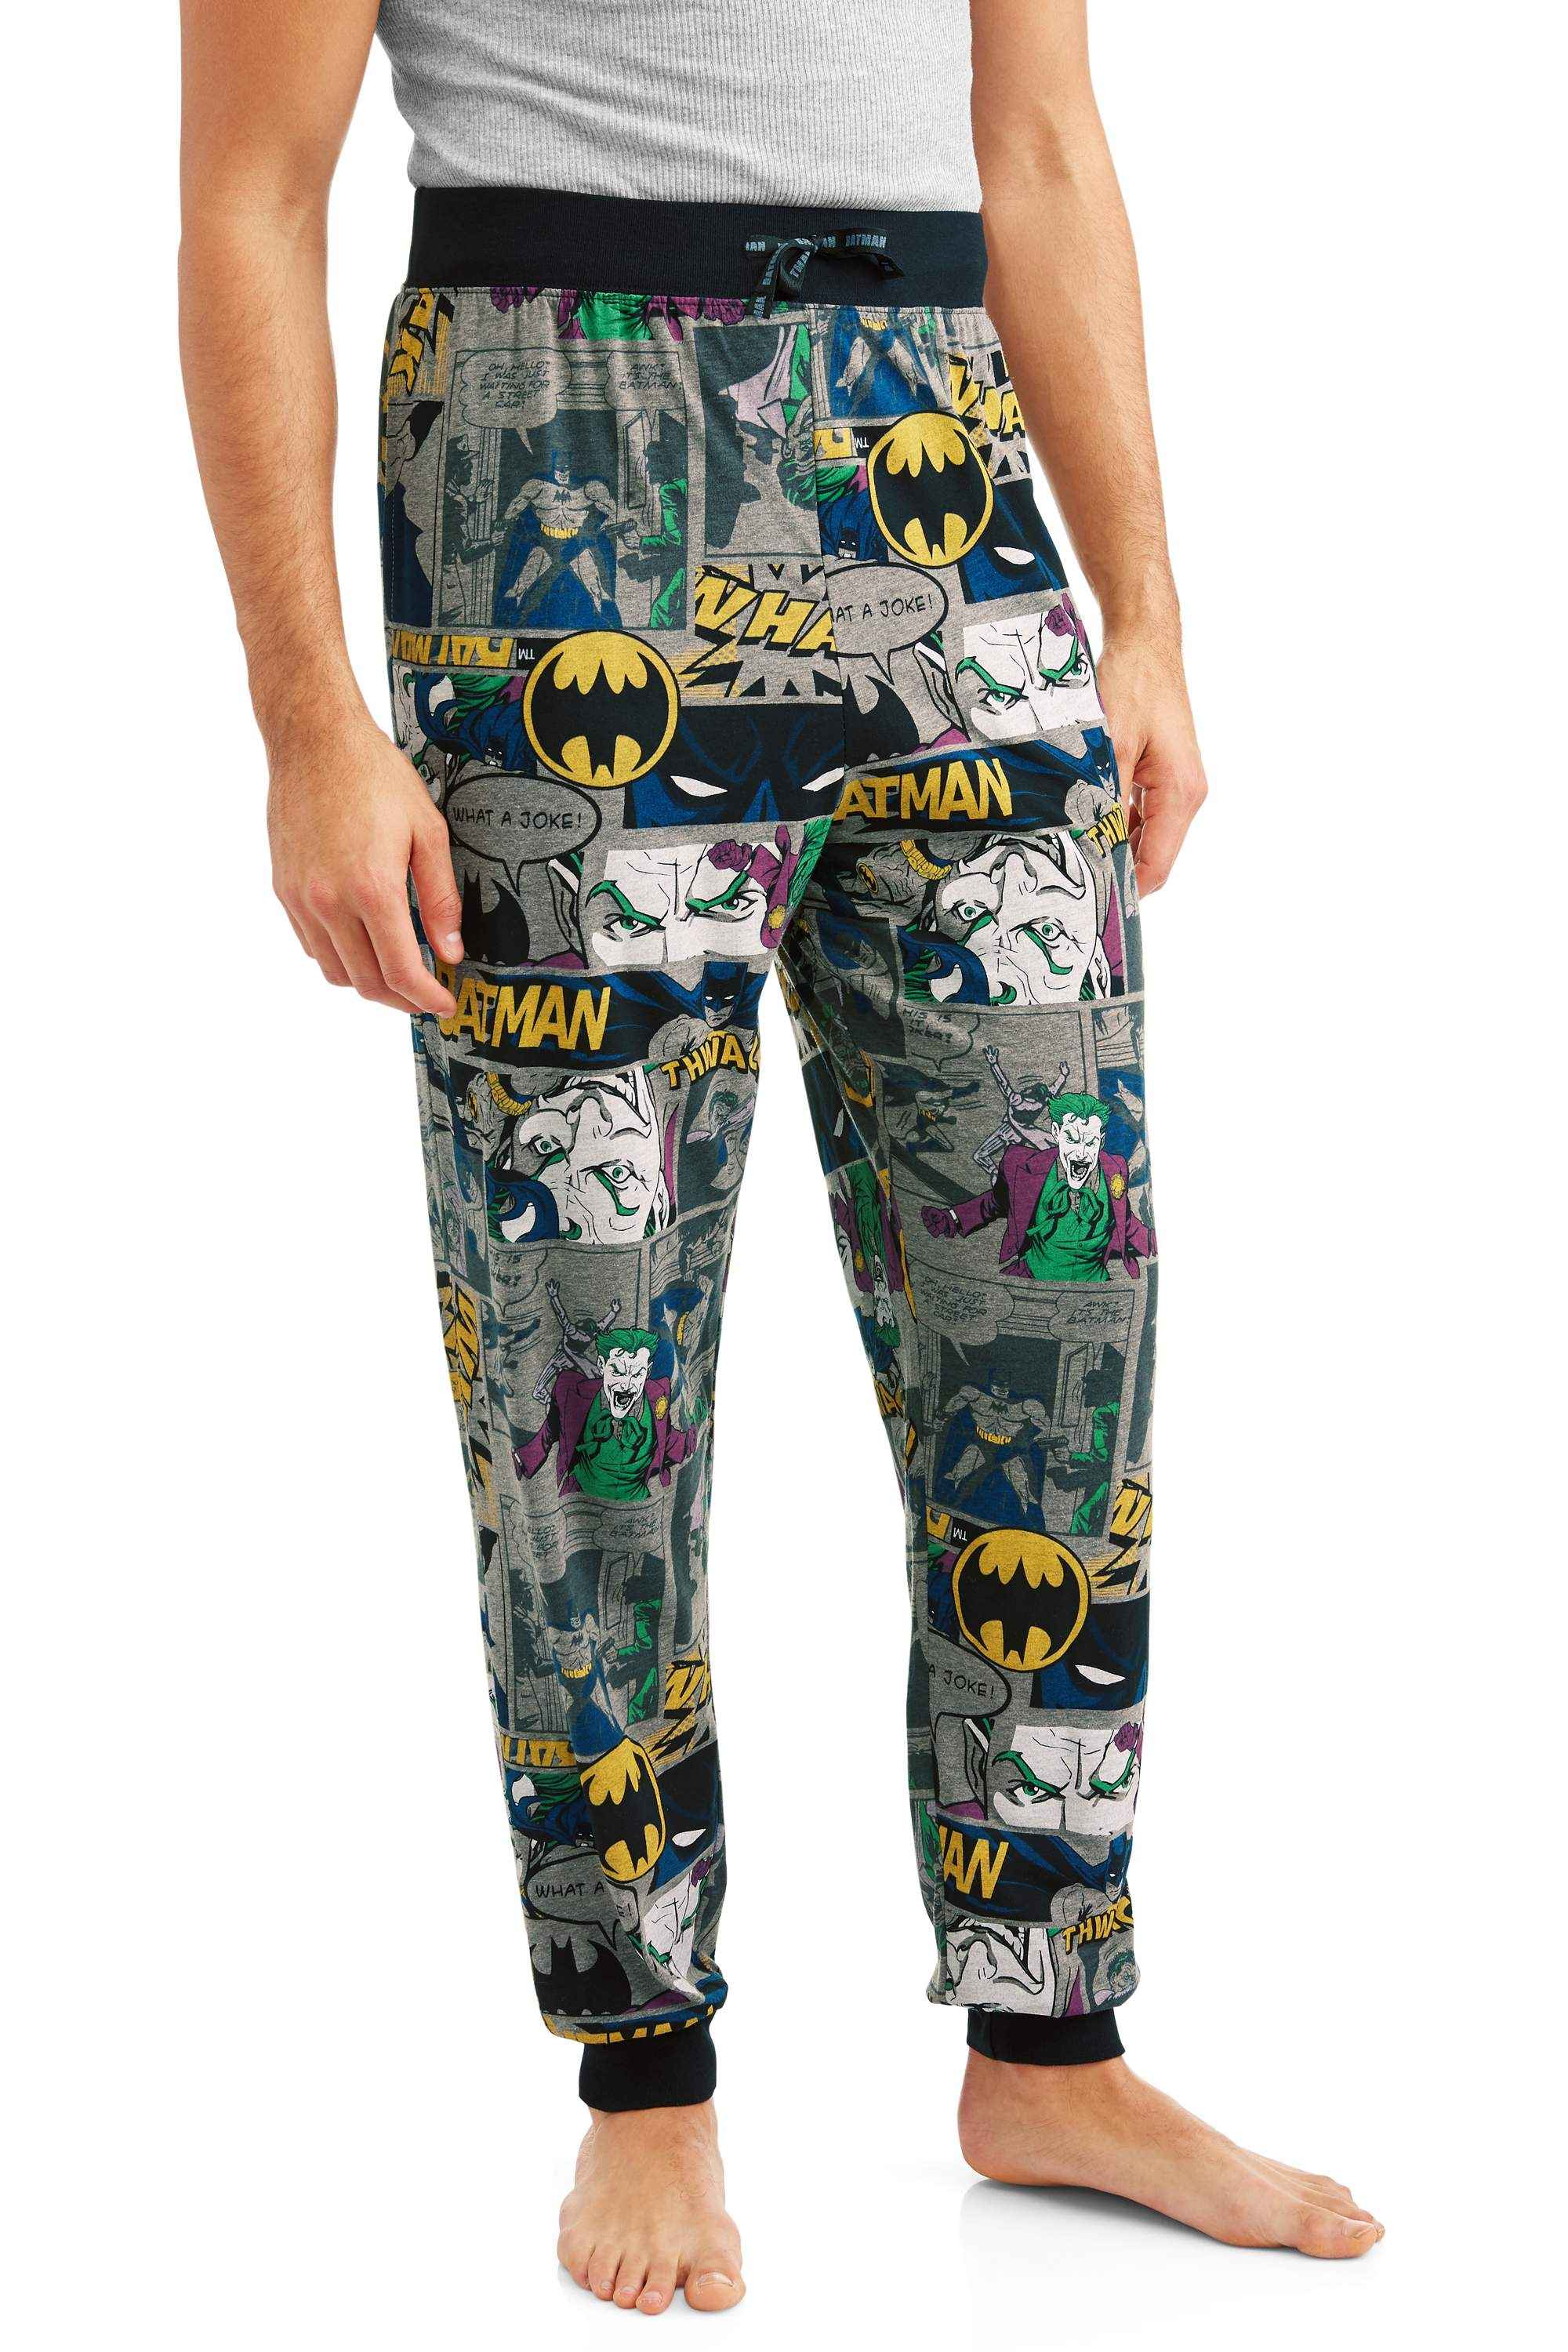 Batman Joker Comics AO Pant